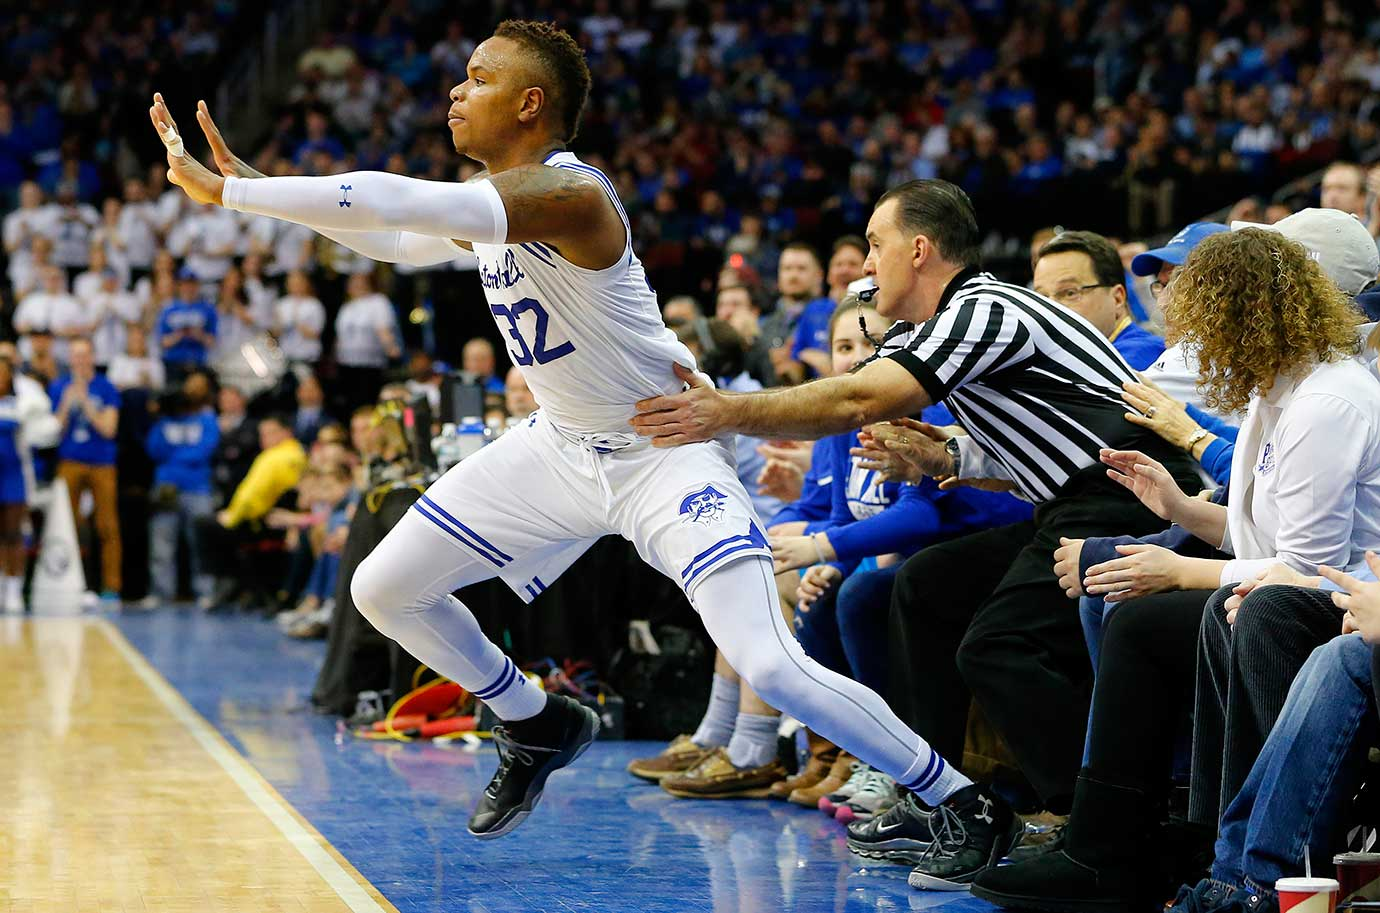 Derrick Gordon of Seton Hall is pushed back onto the court by an official after both landed in the front row of seats against Xavier.